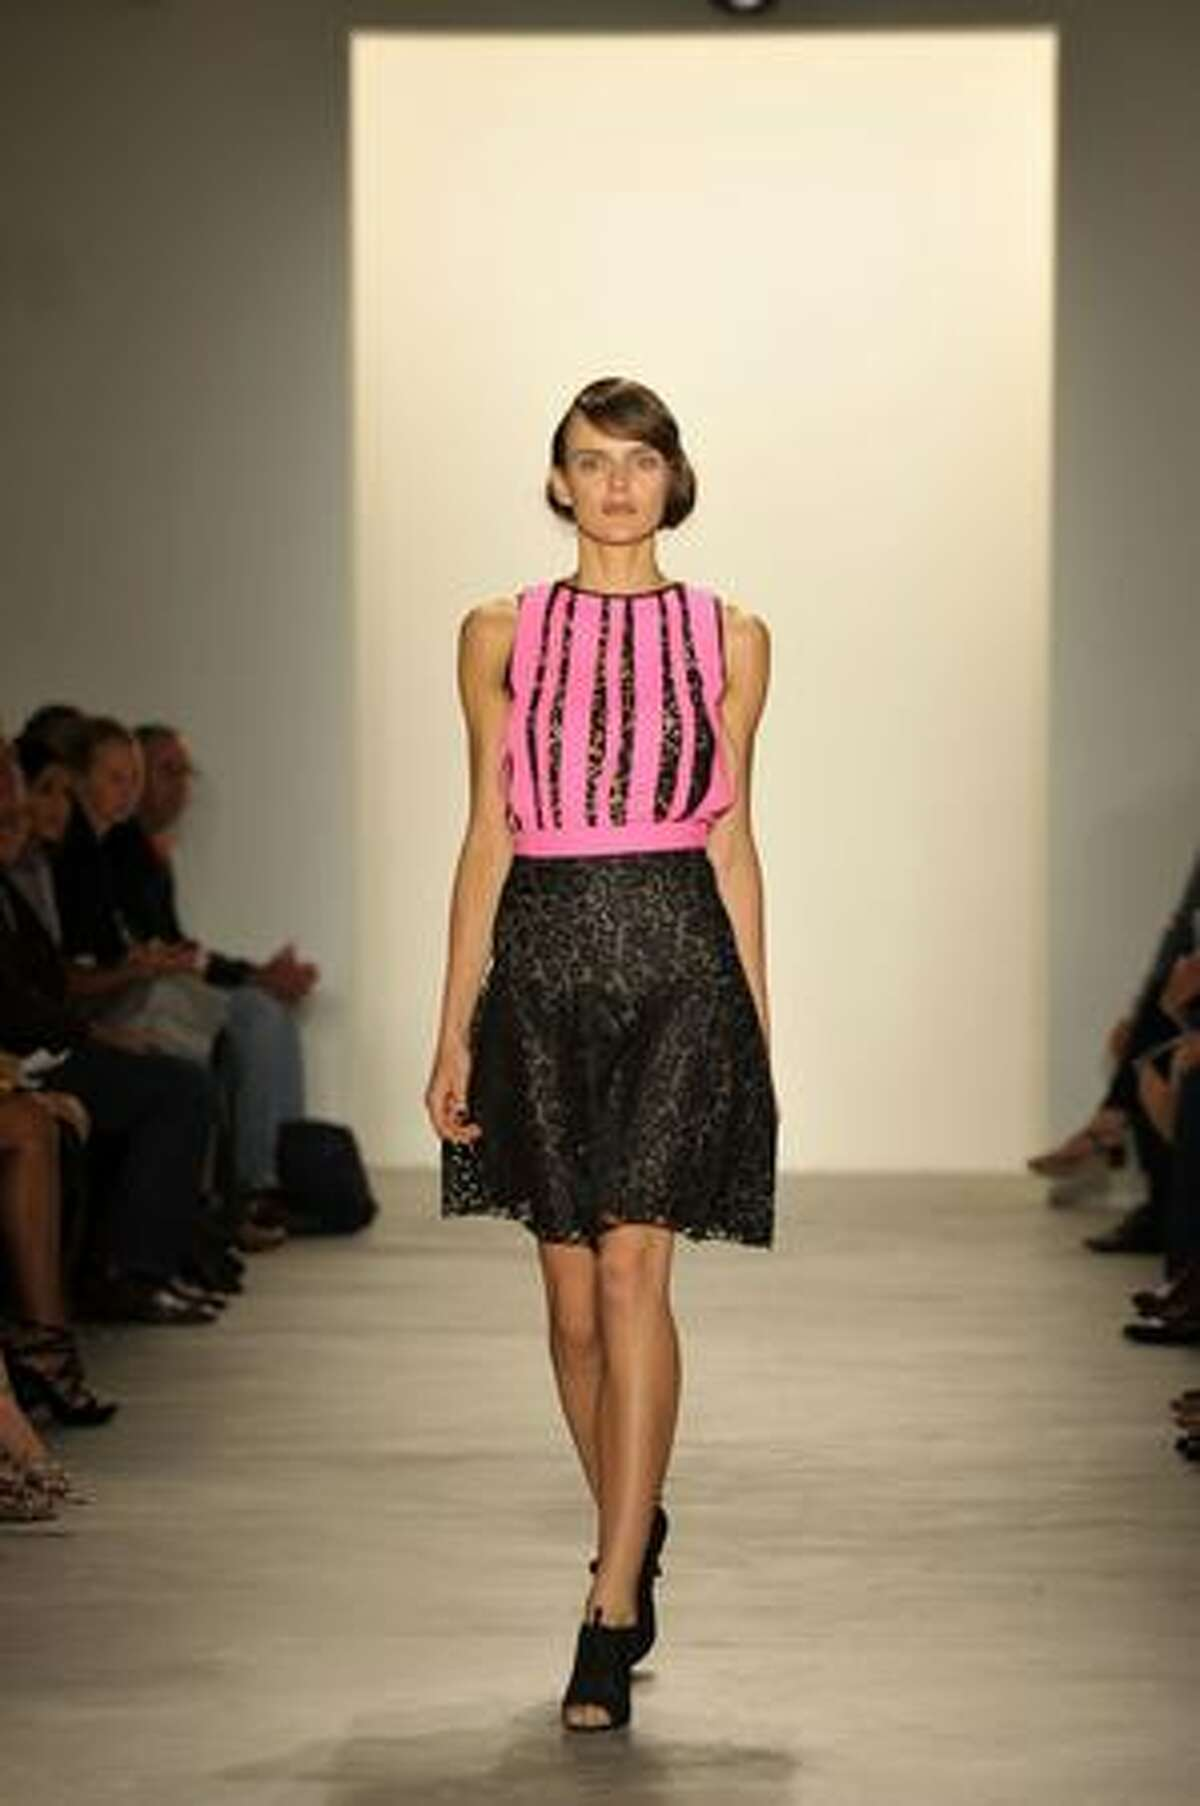 A model walks the runway at the Behnaz Sarafpour Spring 2010 Fashion Show at Milk Studio on Sunday in New York City.